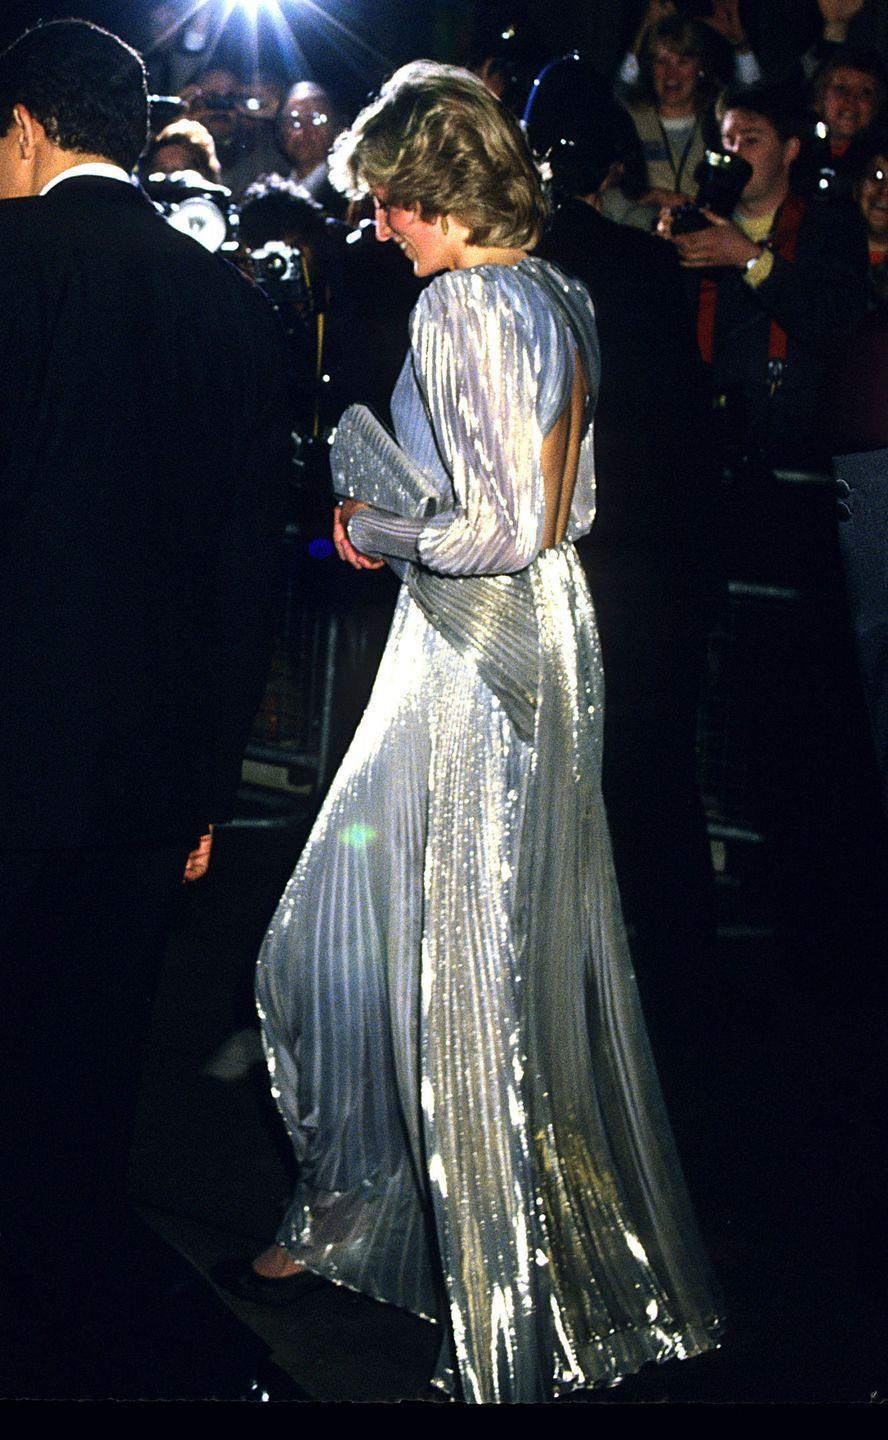 <p>For the premiere of <em>A View To a Kill</em>, Diana chose a long sleeved, metallic, backless gown, with a matching clutch. Prince Charles also attended the movie, rounding out the royal turnout. </p>